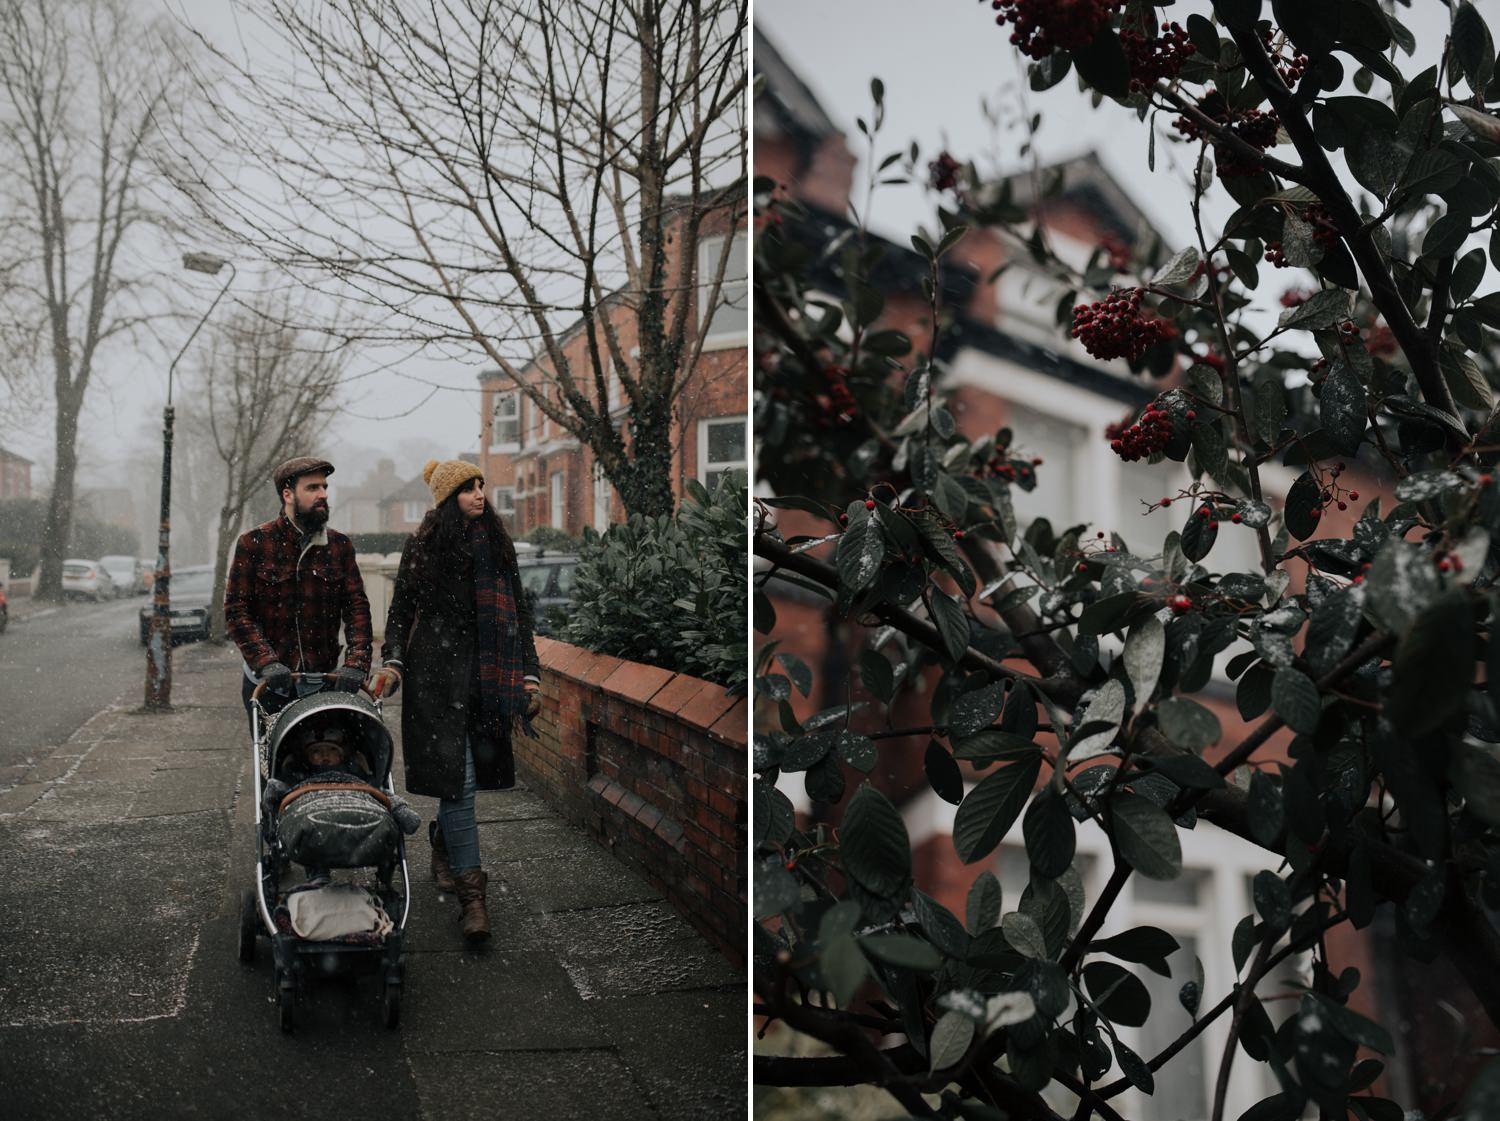 Family walking in the snowy streets of Chorlton in Manchester